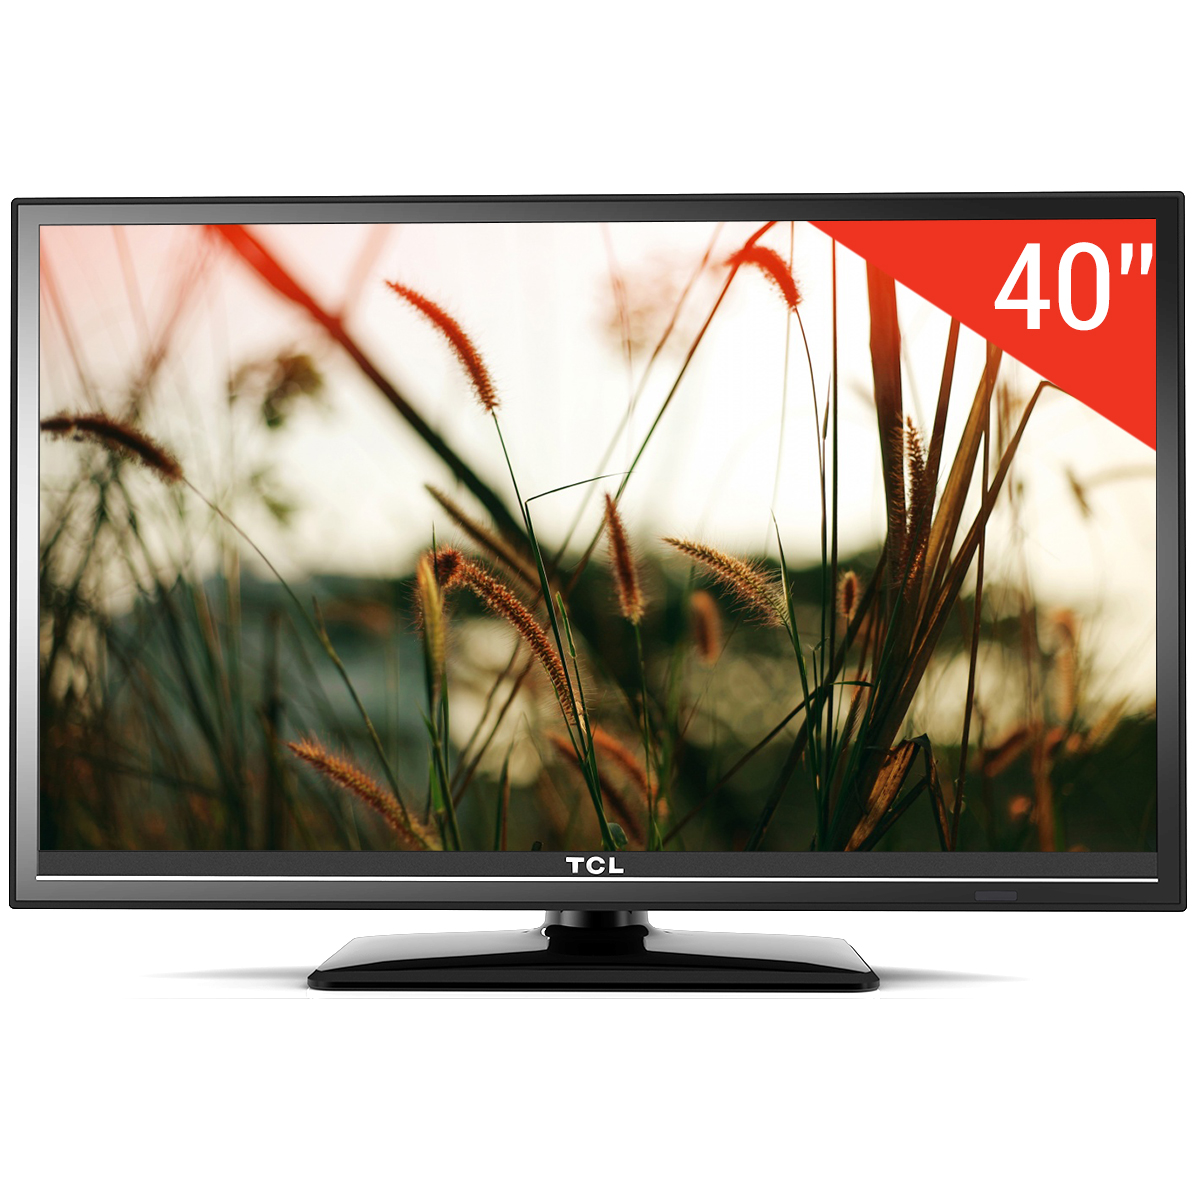 Tcl 40 40d2720 Full Hd Led Tv Price In Pakistan